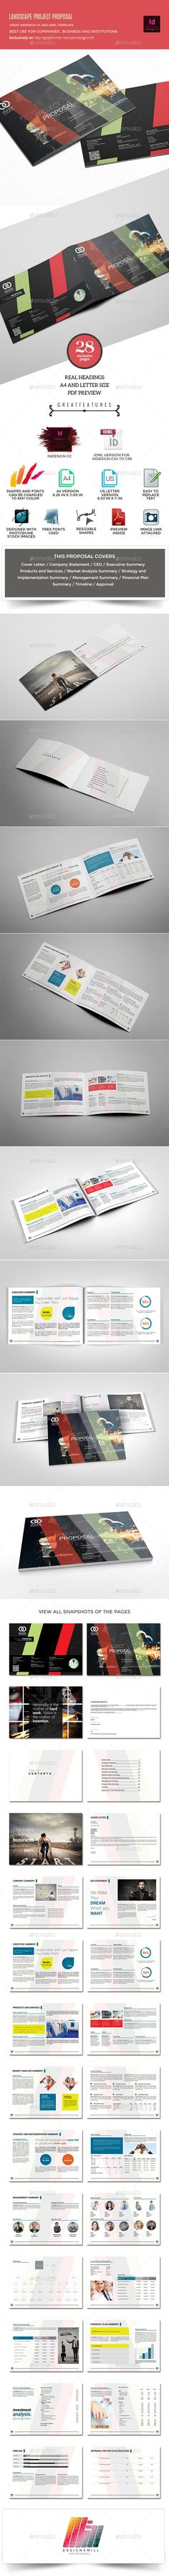 Multipurpose Portfolio Brochure On Behance  Graphic Design